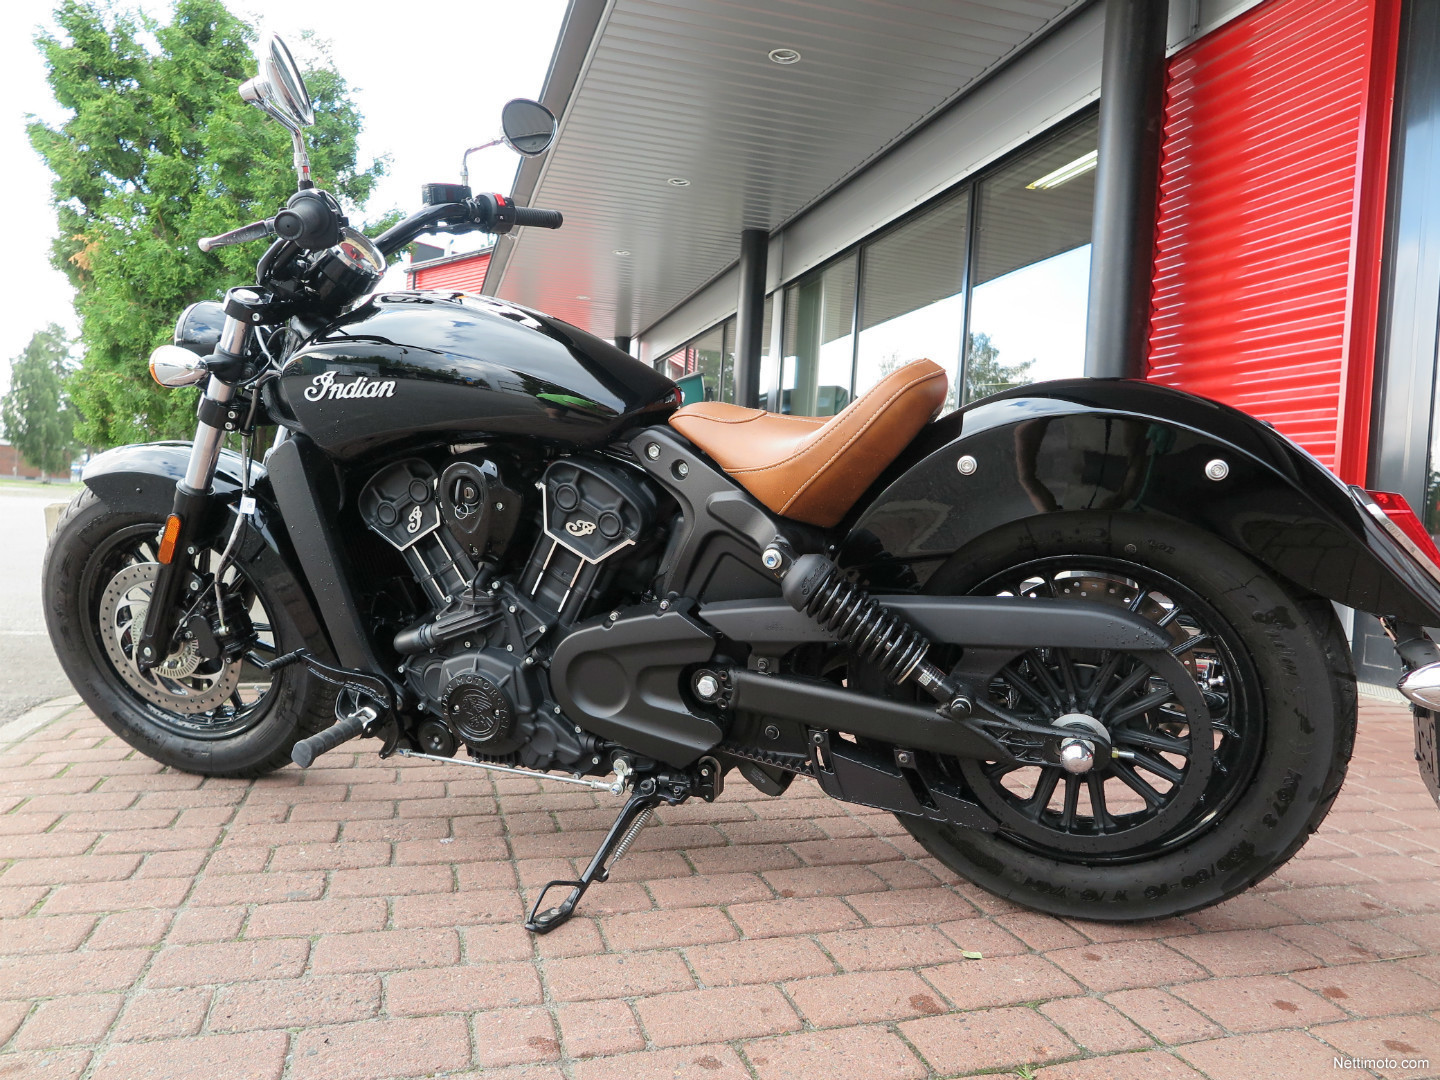 indian scout sixty 1 000 cm 2017 joensuu motorcycle nettimoto. Black Bedroom Furniture Sets. Home Design Ideas